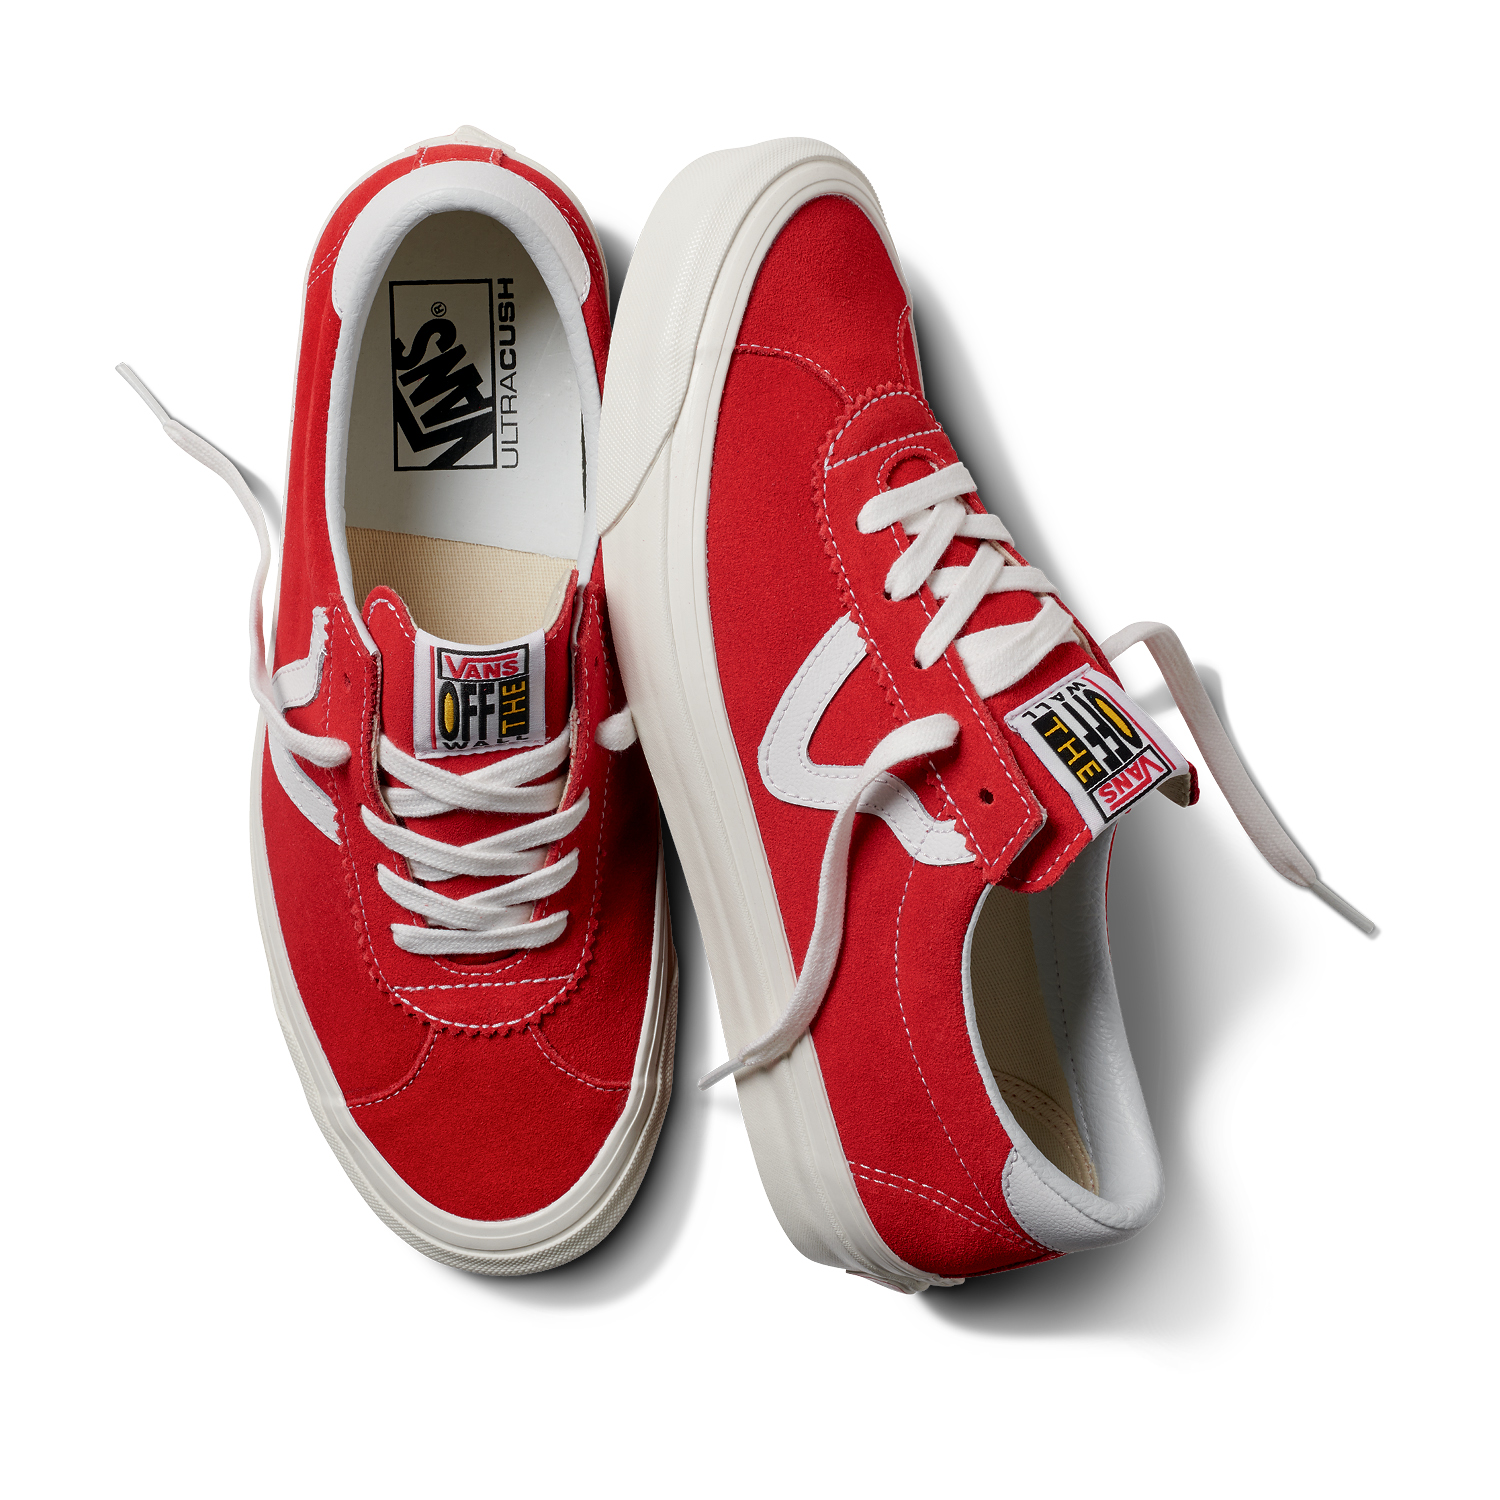 VANS Anaheim Factory Style 73 DX Collection FRESHCOTTON